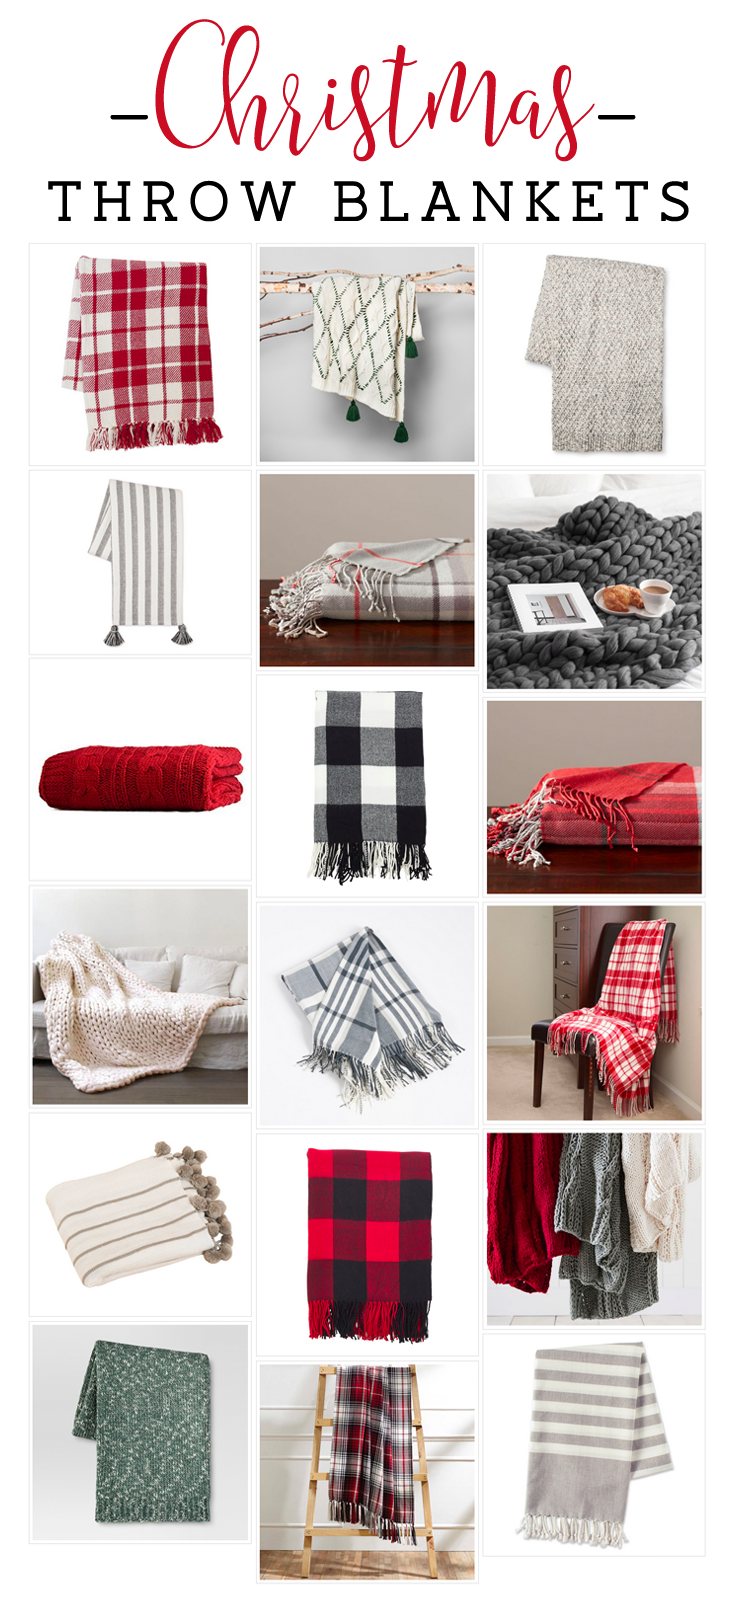 Farmhouse Christmas Decor | Target, Budgeting and Blanket